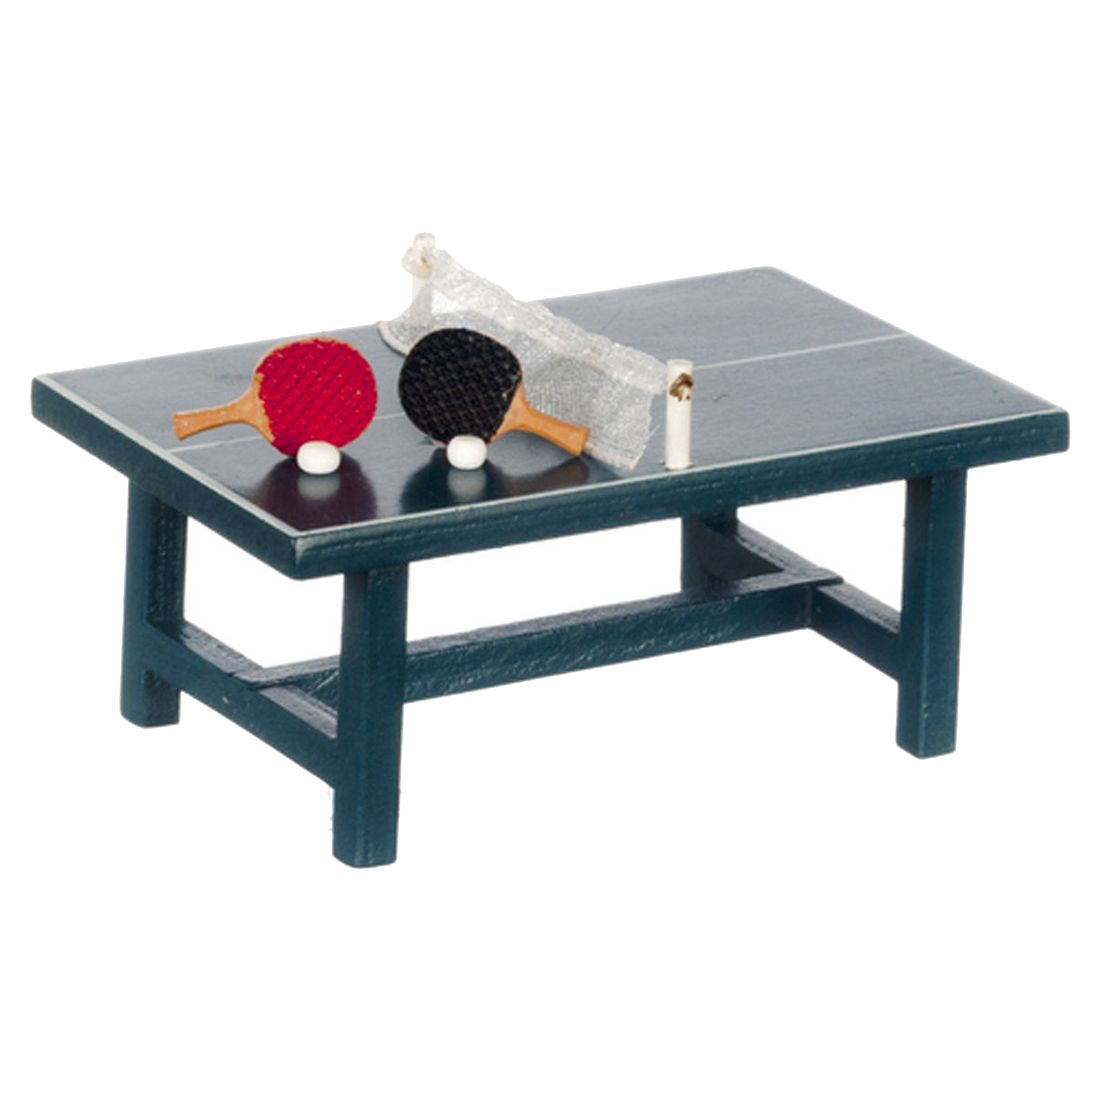 Dollhouse Miniature Decoration PING PONG TABLE WITH BALLS & RACKETSDollhouse Miniature Decoration PING PONG TABLE WITH BALLS & RACKETS